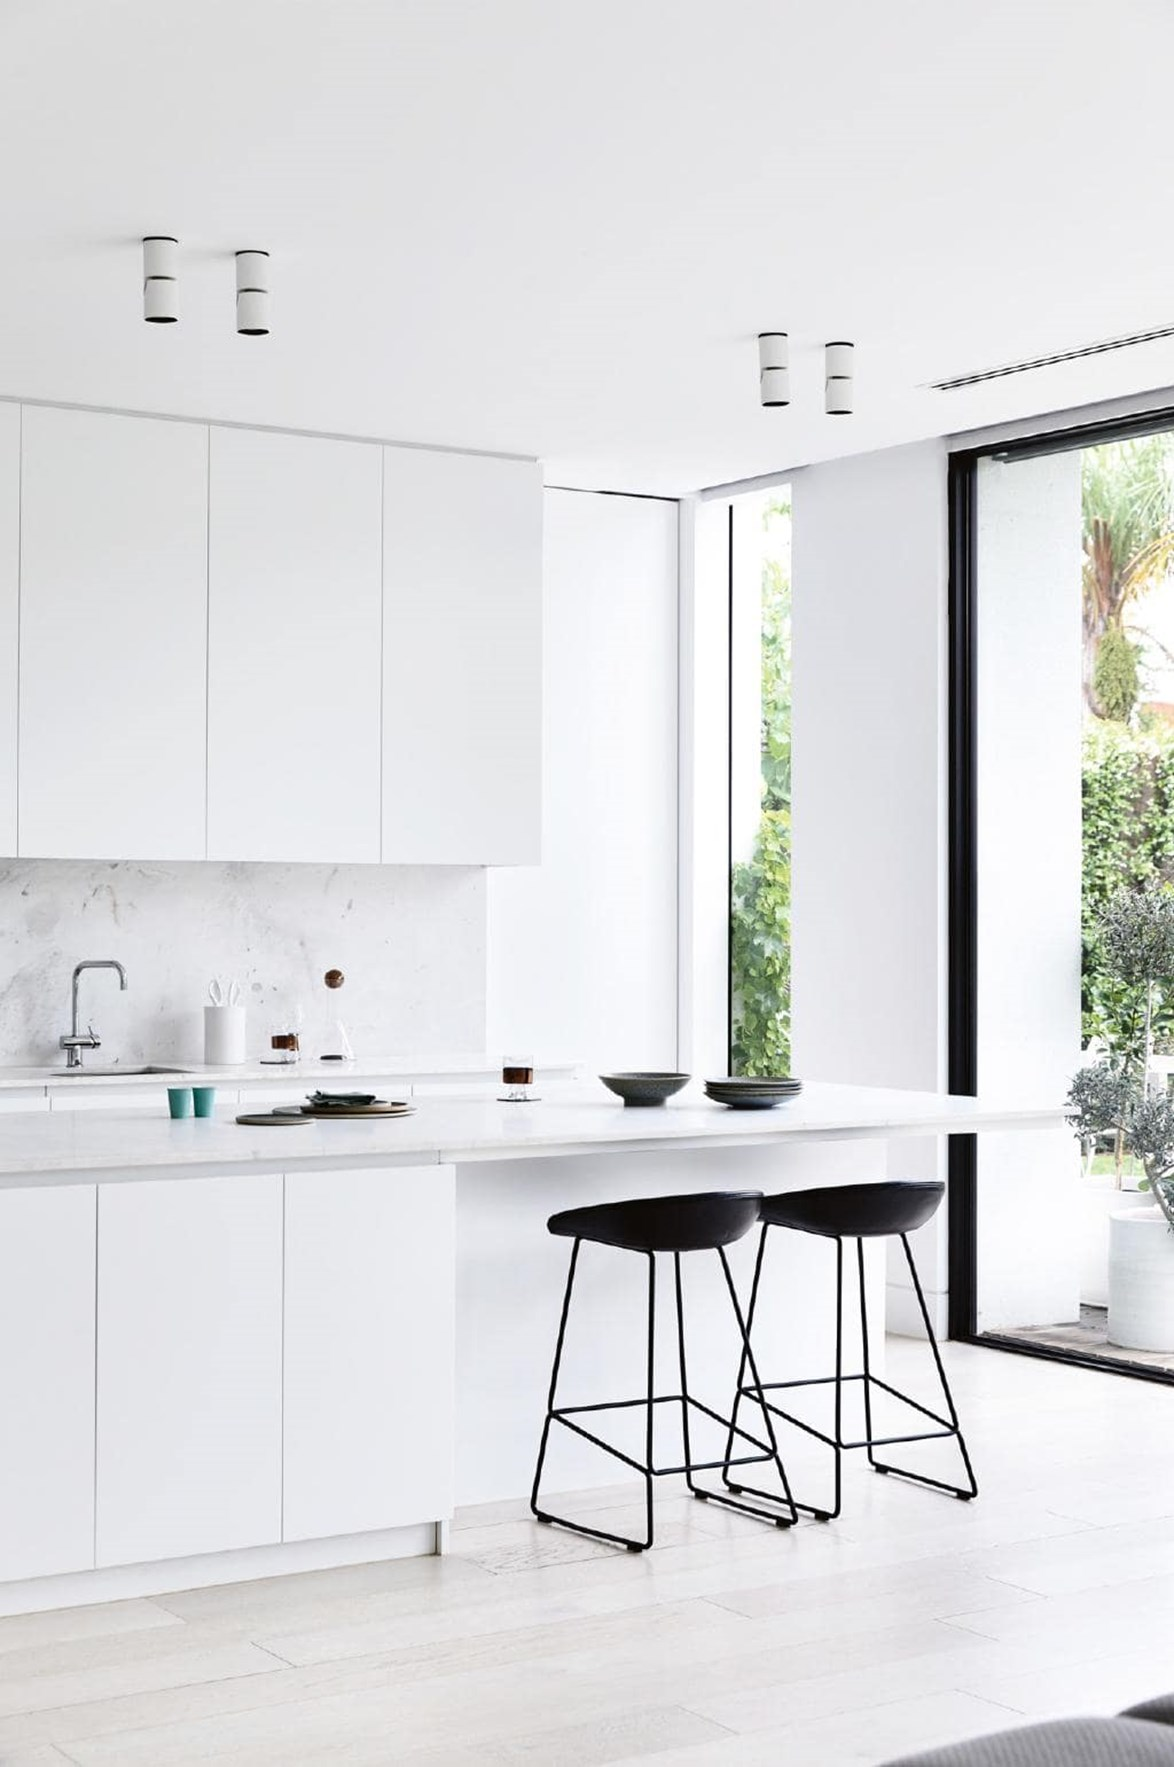 "Do away with tricky decisions surrounding colour palettes and instead opt for a simple all-white aesthetic. White kitchens are crowd pleasers, looking clean and fresh. In this [minimalist style home](https://www.homestolove.com.au/how-to-add-bright-colour-to-a-minimalist-style-home-18410|target=""_blank""), a kitchen island with marble benchtop adds texture while floor-to-ceiling windows connect the room to the great outdoors."